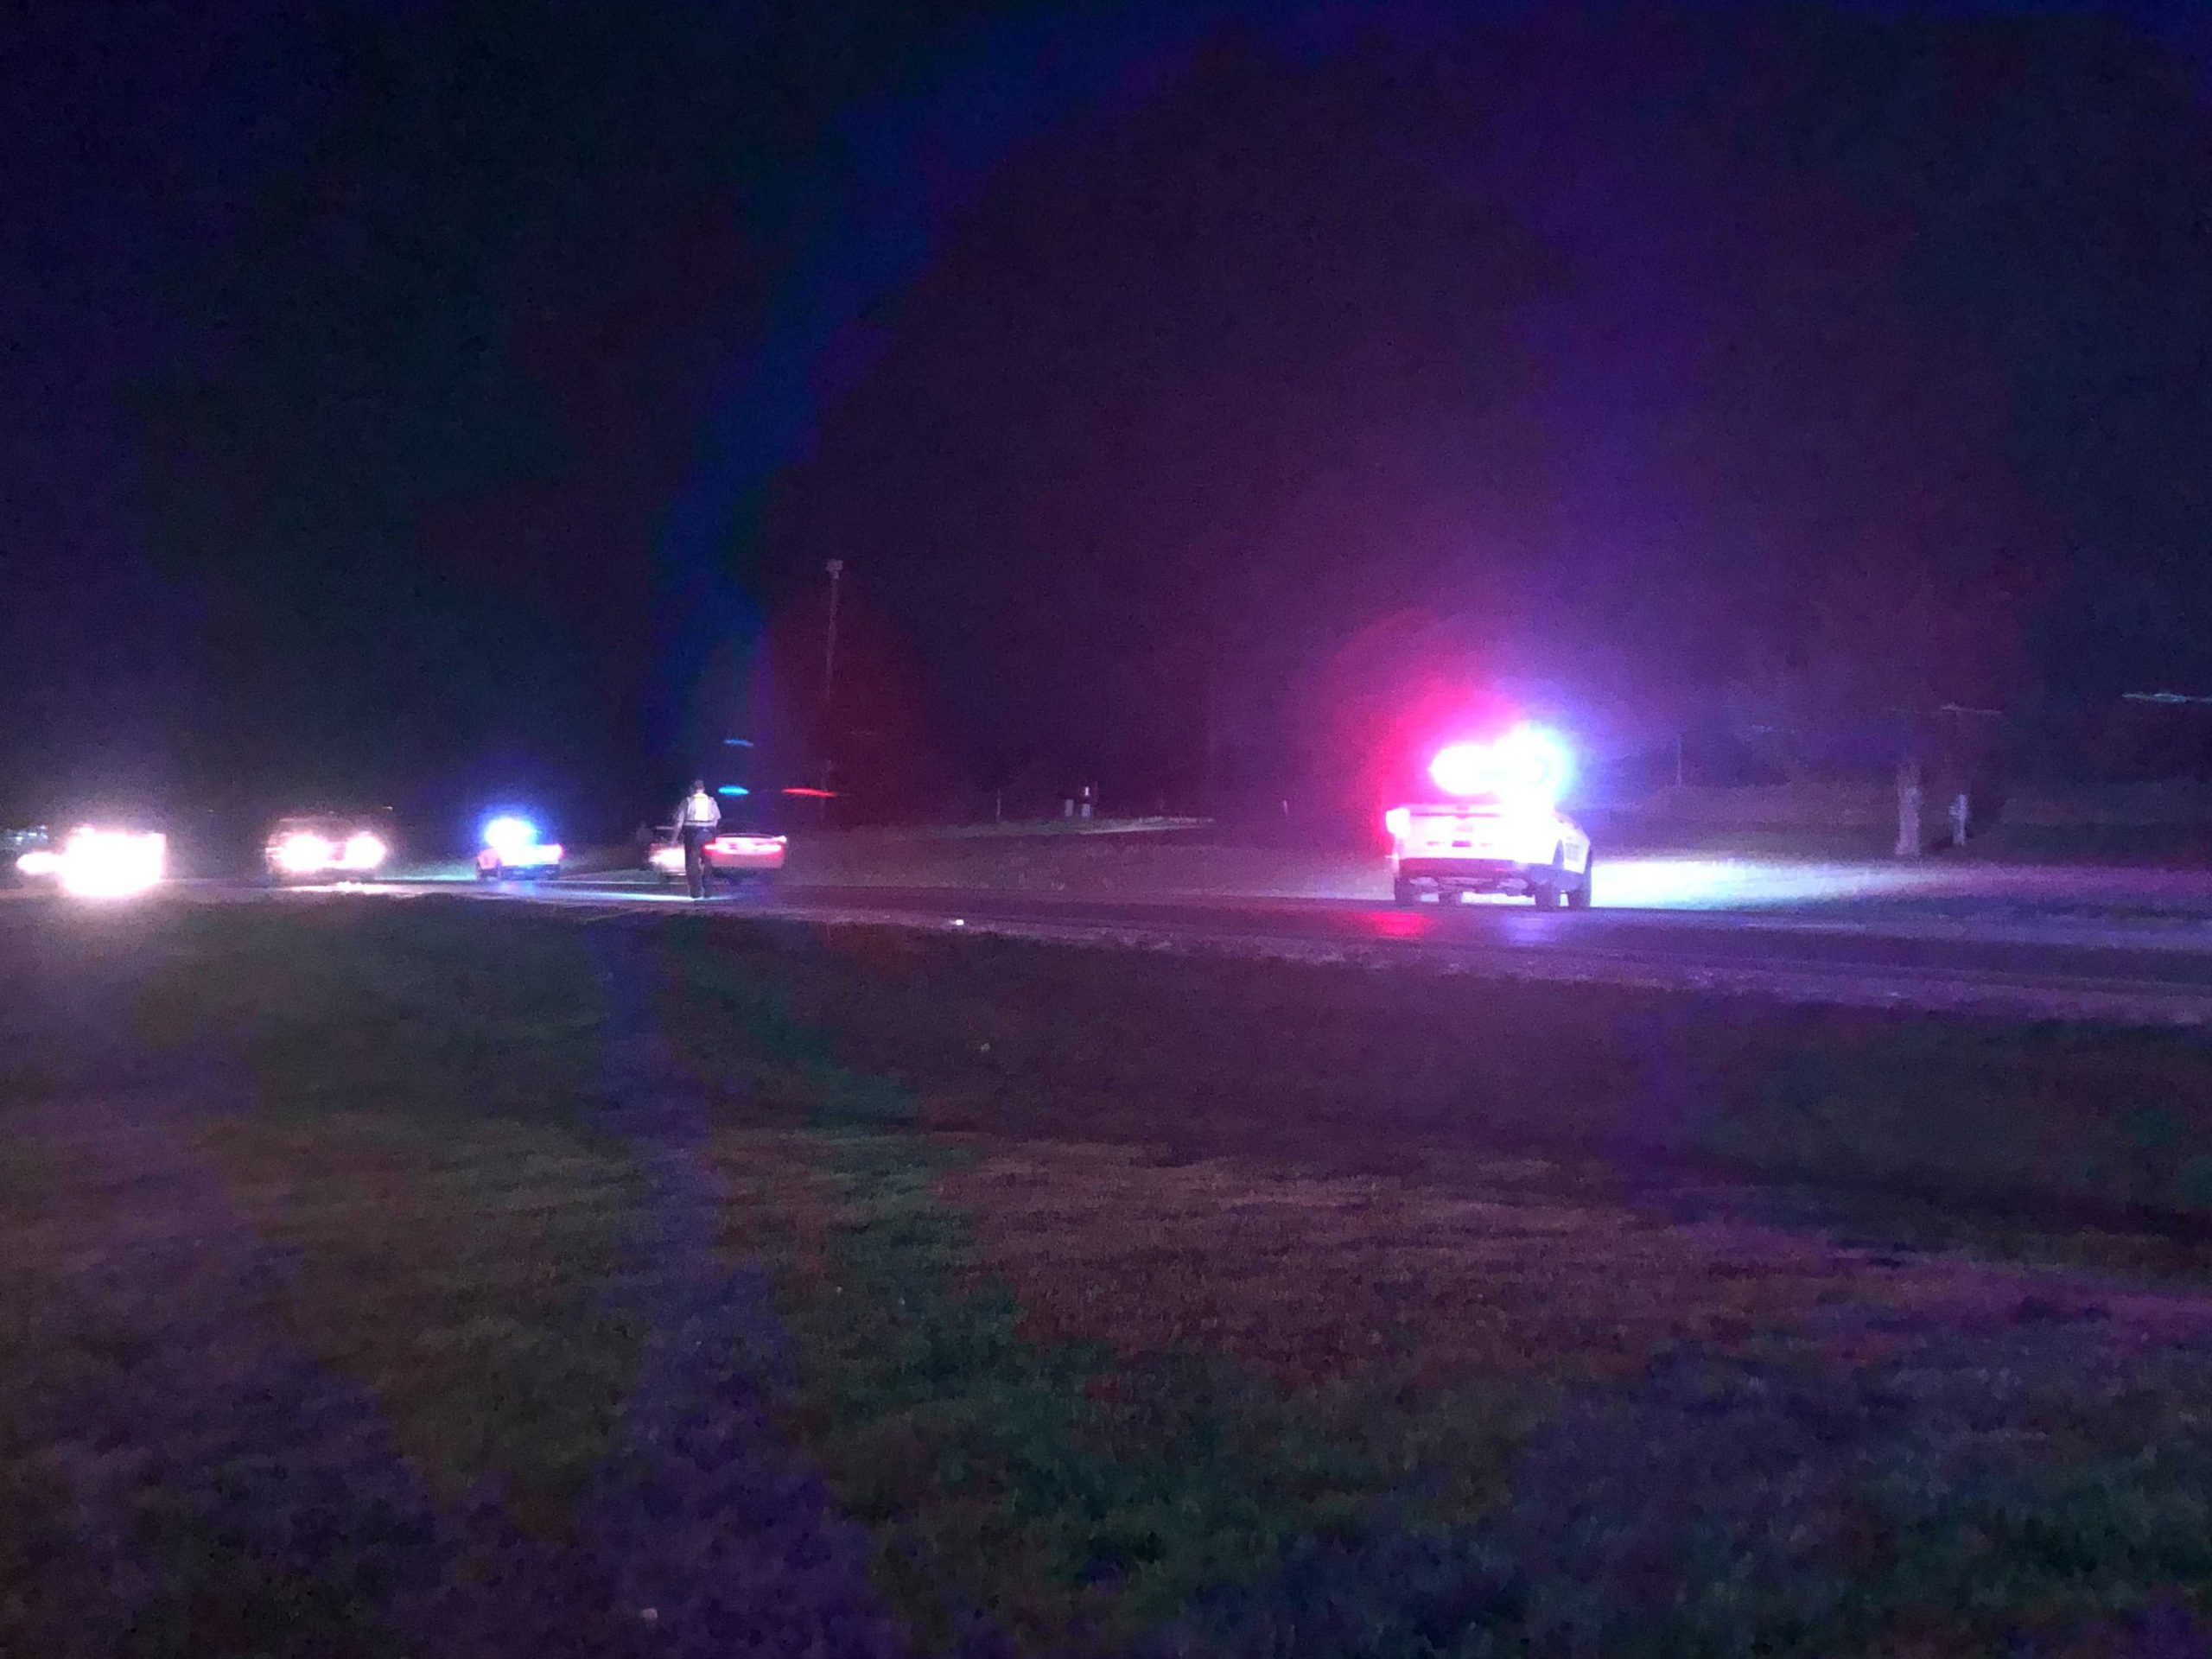 Missouri state troopers responded to a pedestrian crash on Highway 40 Sunday night, April 25, 2021.